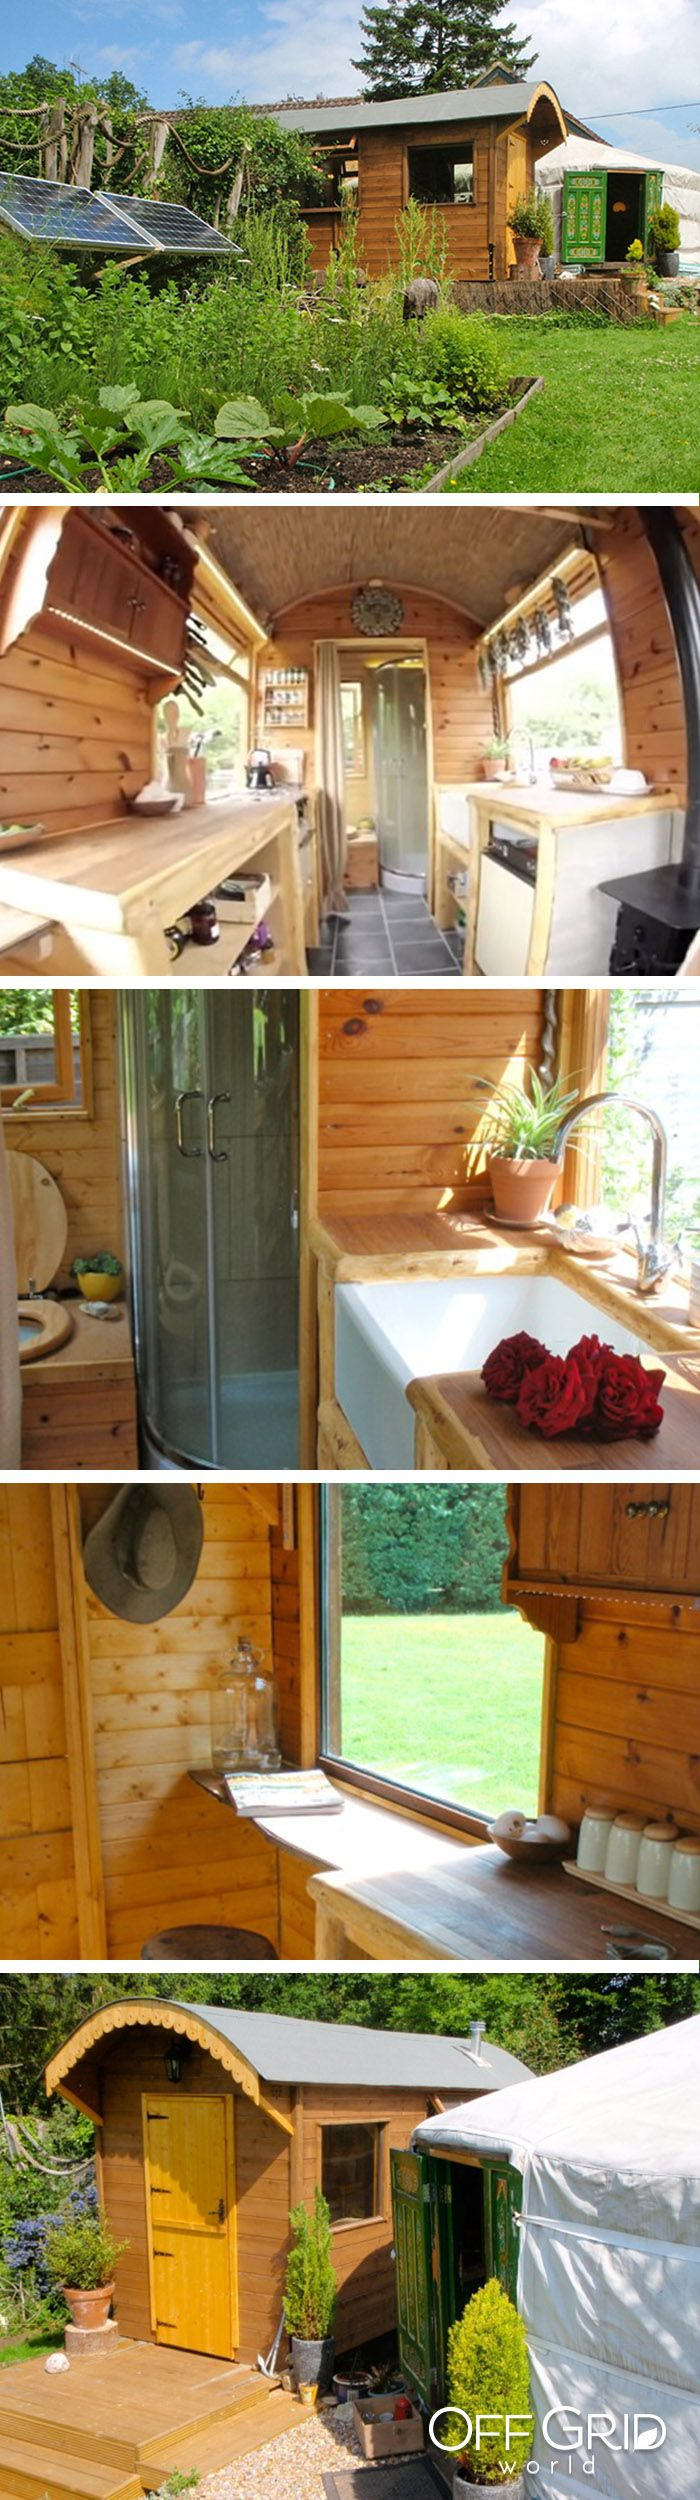 Best 25+ Off grid house ideas on Pinterest | Root cellar, Rustic ...